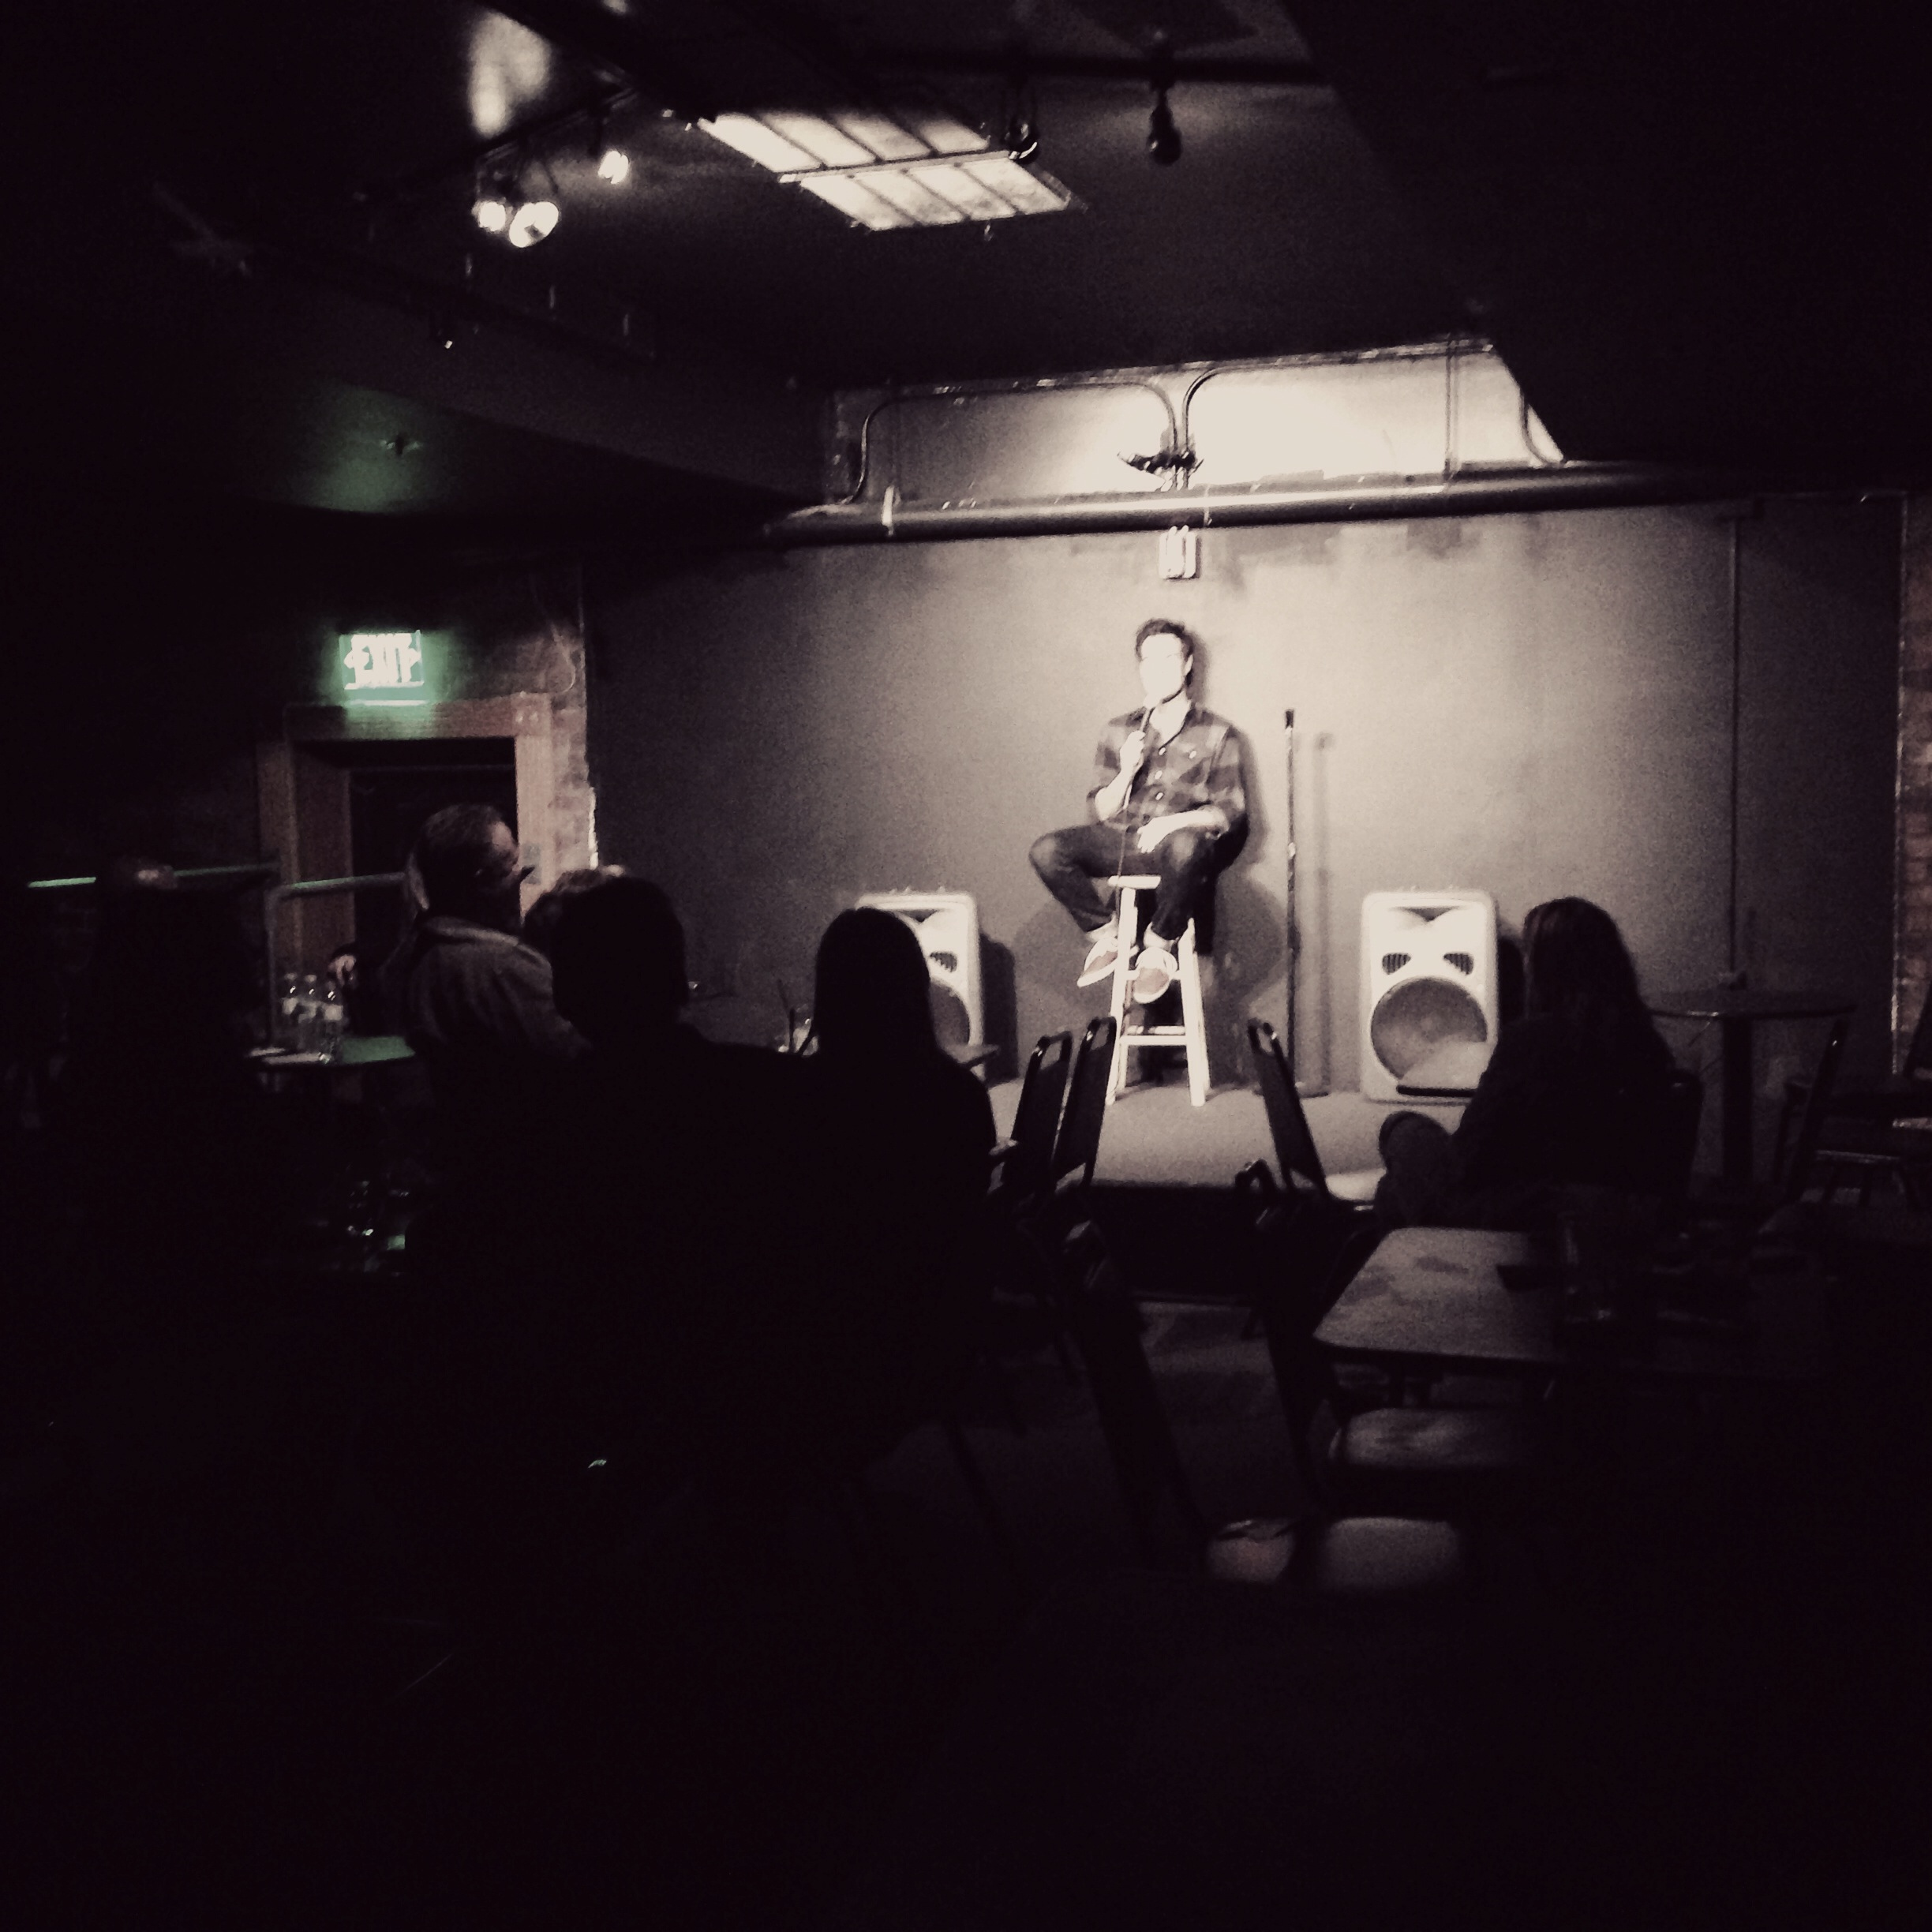 Michael Malone performing at The Comedy Spot in Scottsdale.